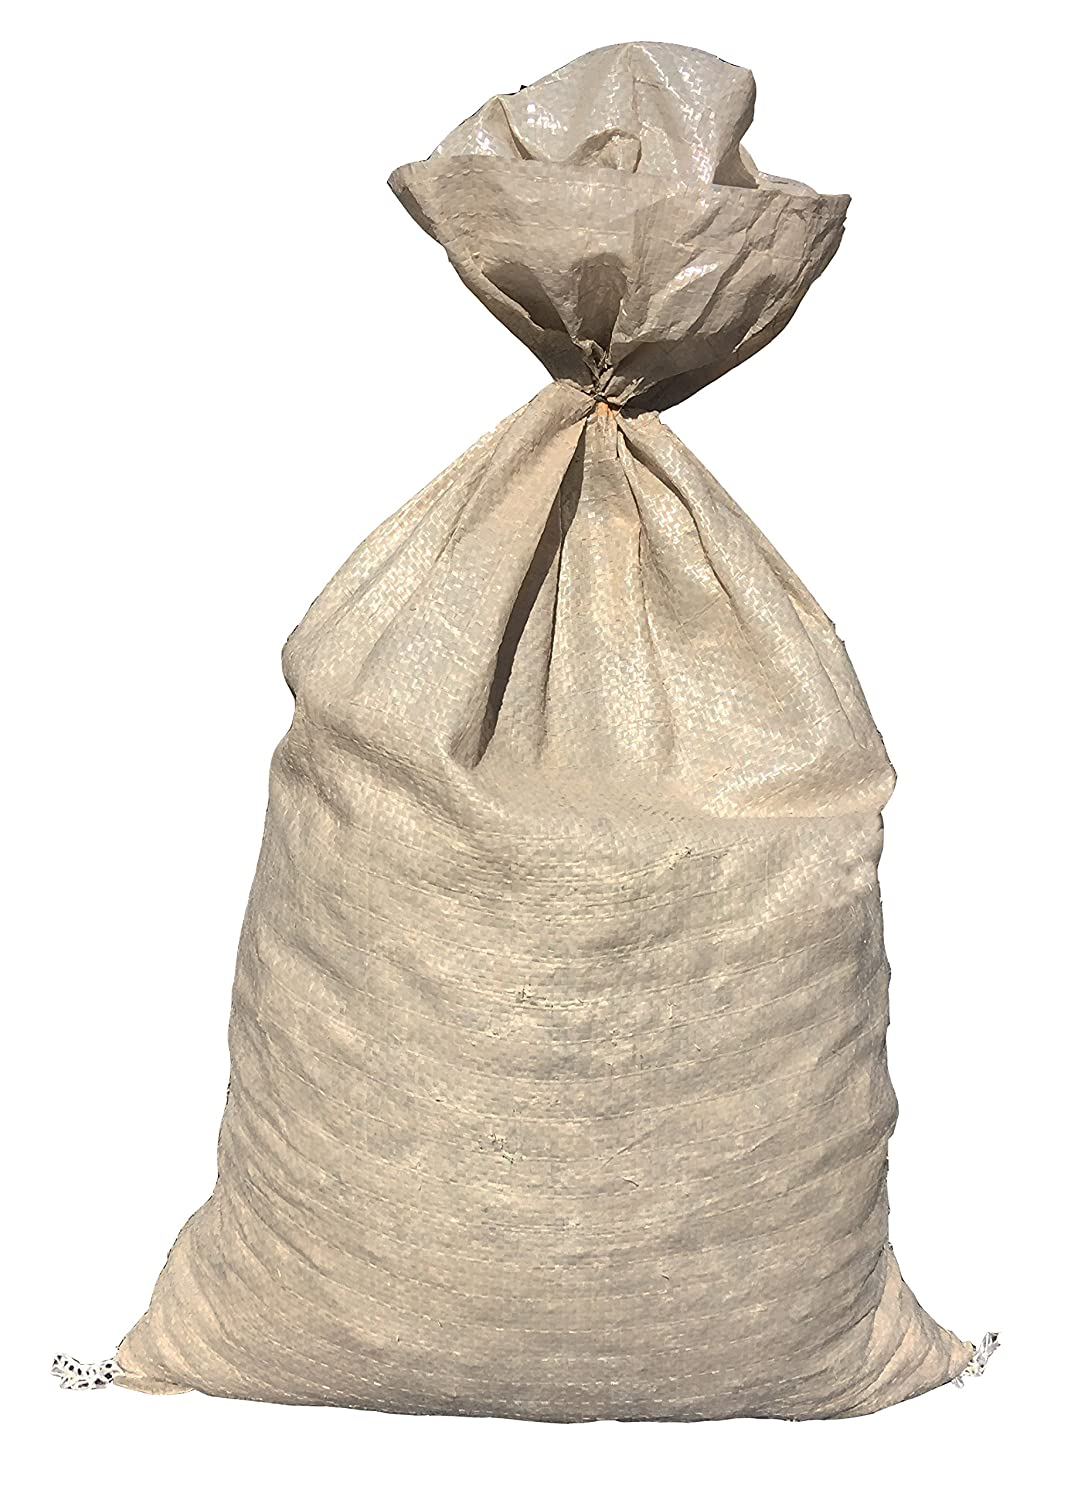 Sandbaggy - Empty Poly Sandbags W/UV Protection - Size: 14' x 26' - Color: Beige - Military Grade (10 Sandbags)